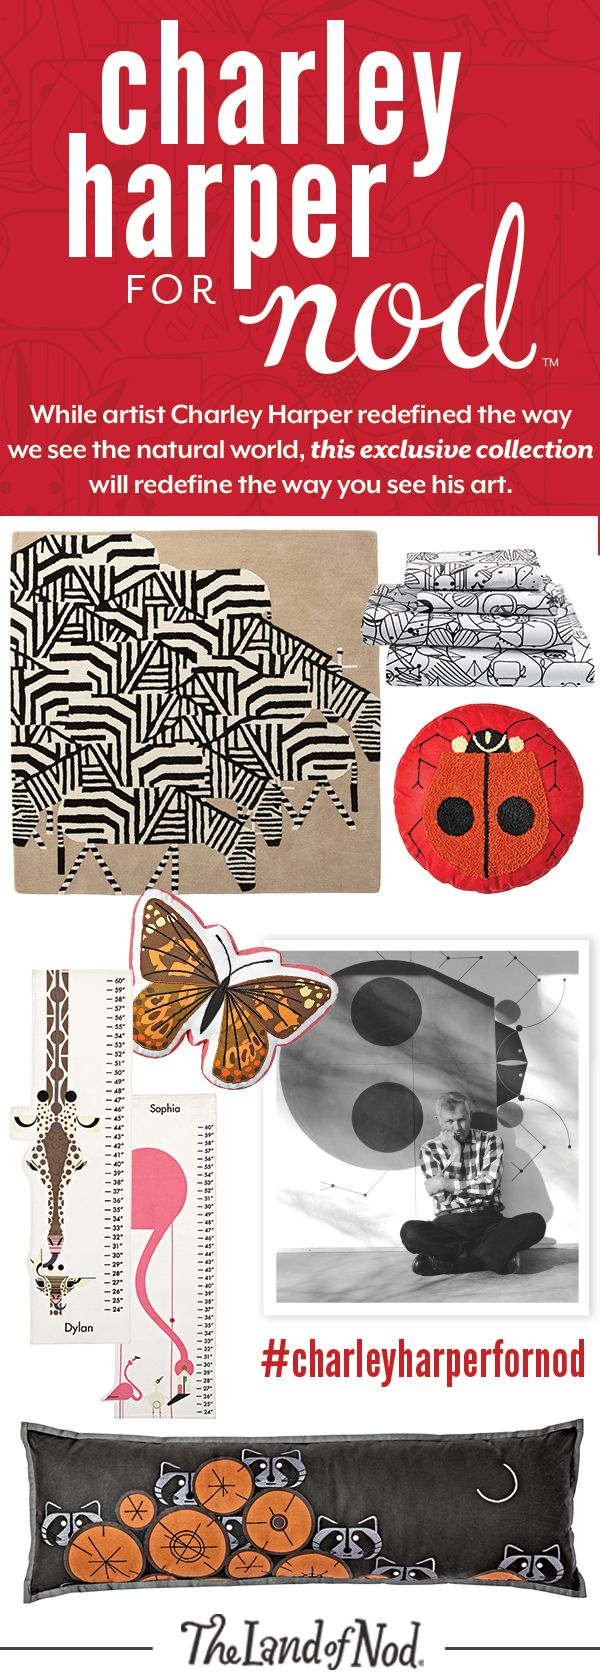 """We're thrilled to introduce our Charley Harper for Nod Collection. Featuring the iconic artwork from the world's most beloved wildlife artist, this exclusively designed lineup puts the """"great"""" in the great outdoors. From animal bedding and pillows to rugs and growth charts, these kid's room essentials embody the spirit of his timeless style."""